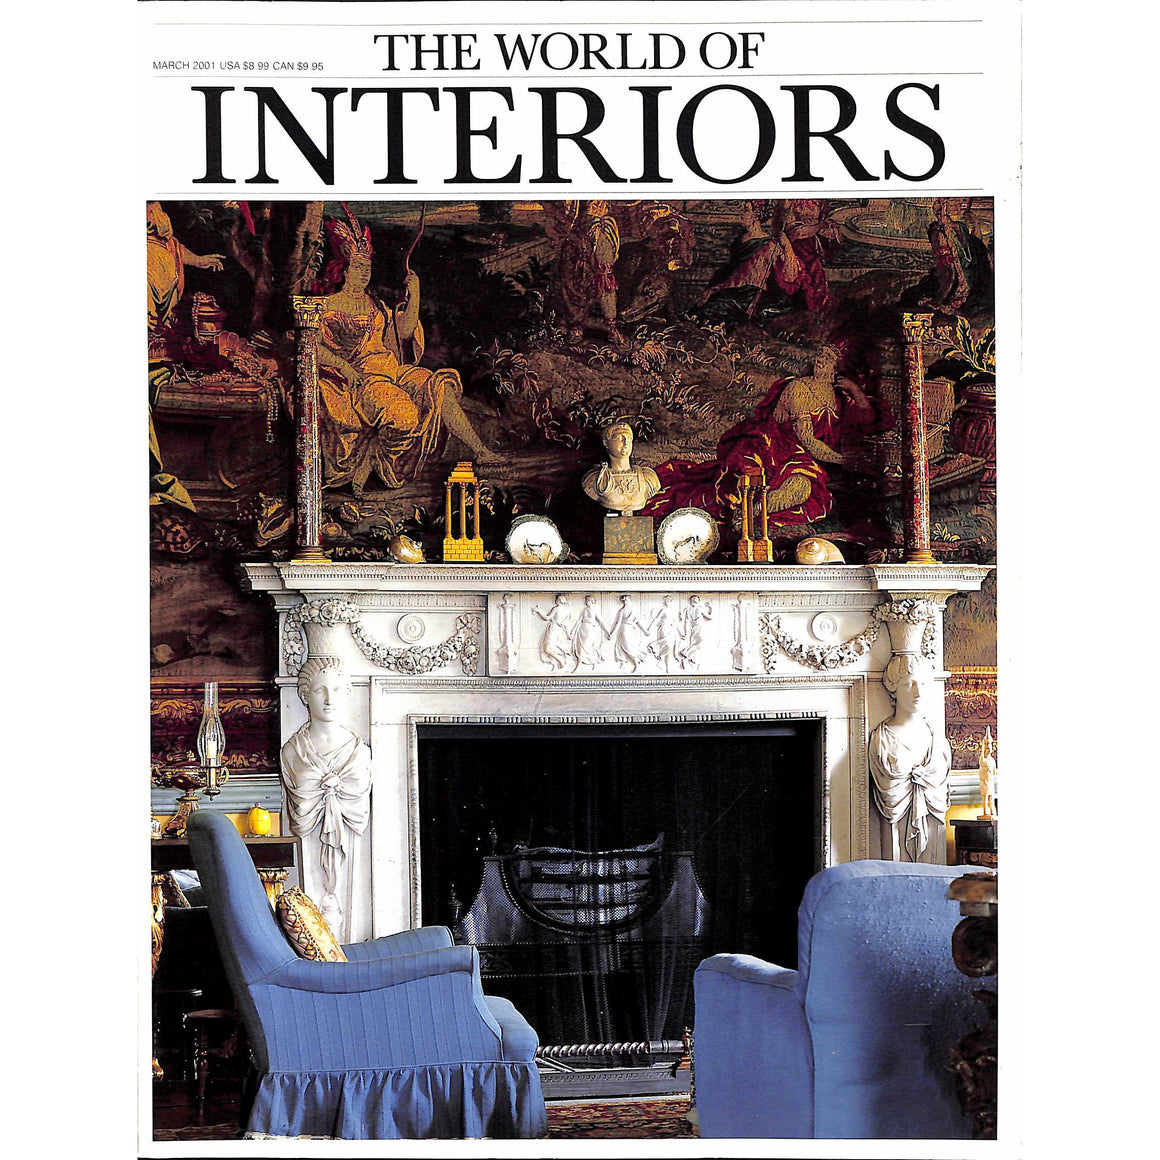 The World of Interiors March 2001